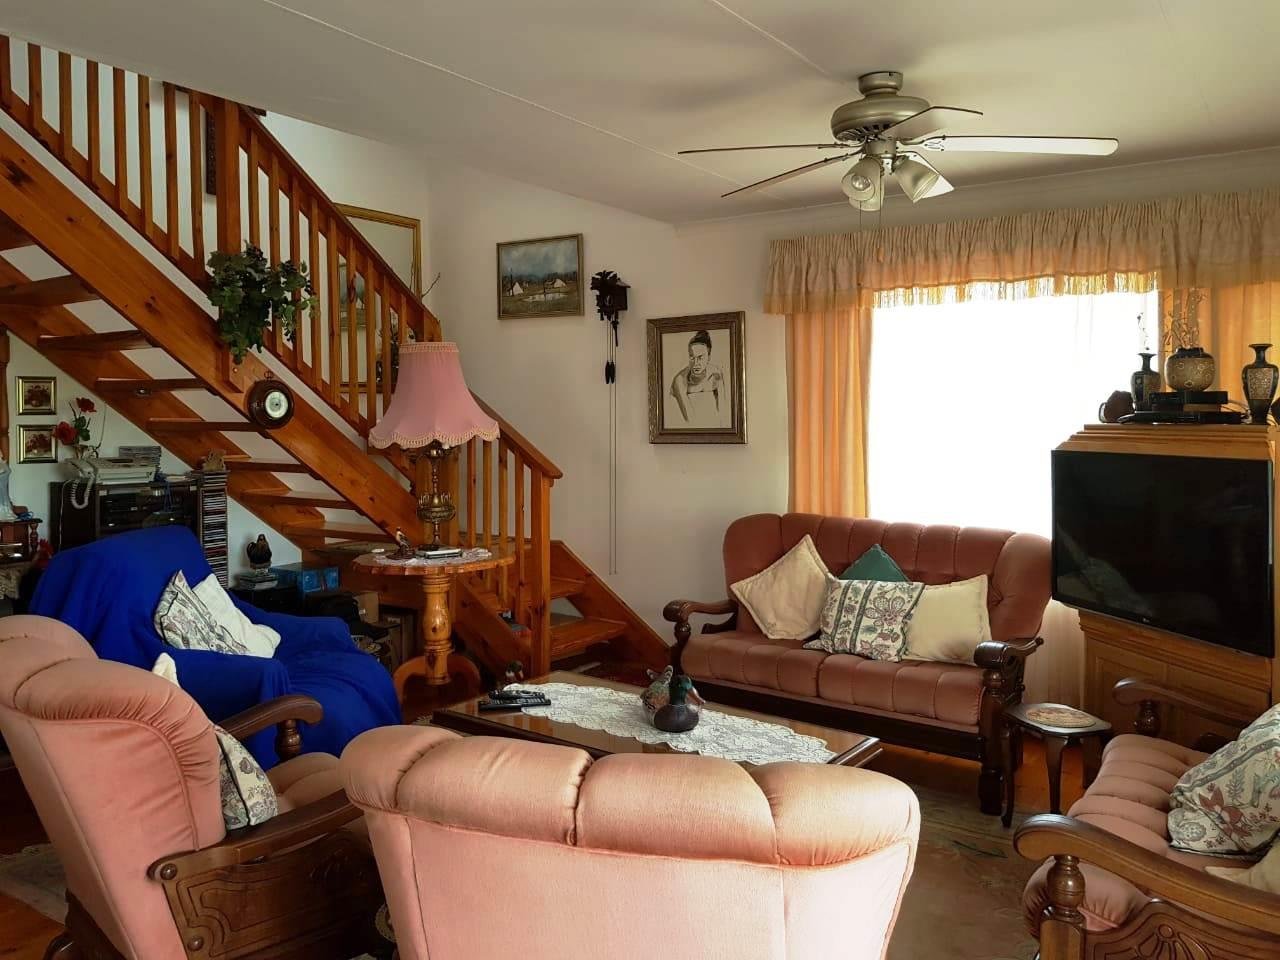 4 Bedroom House For Sale in Fisherhaven